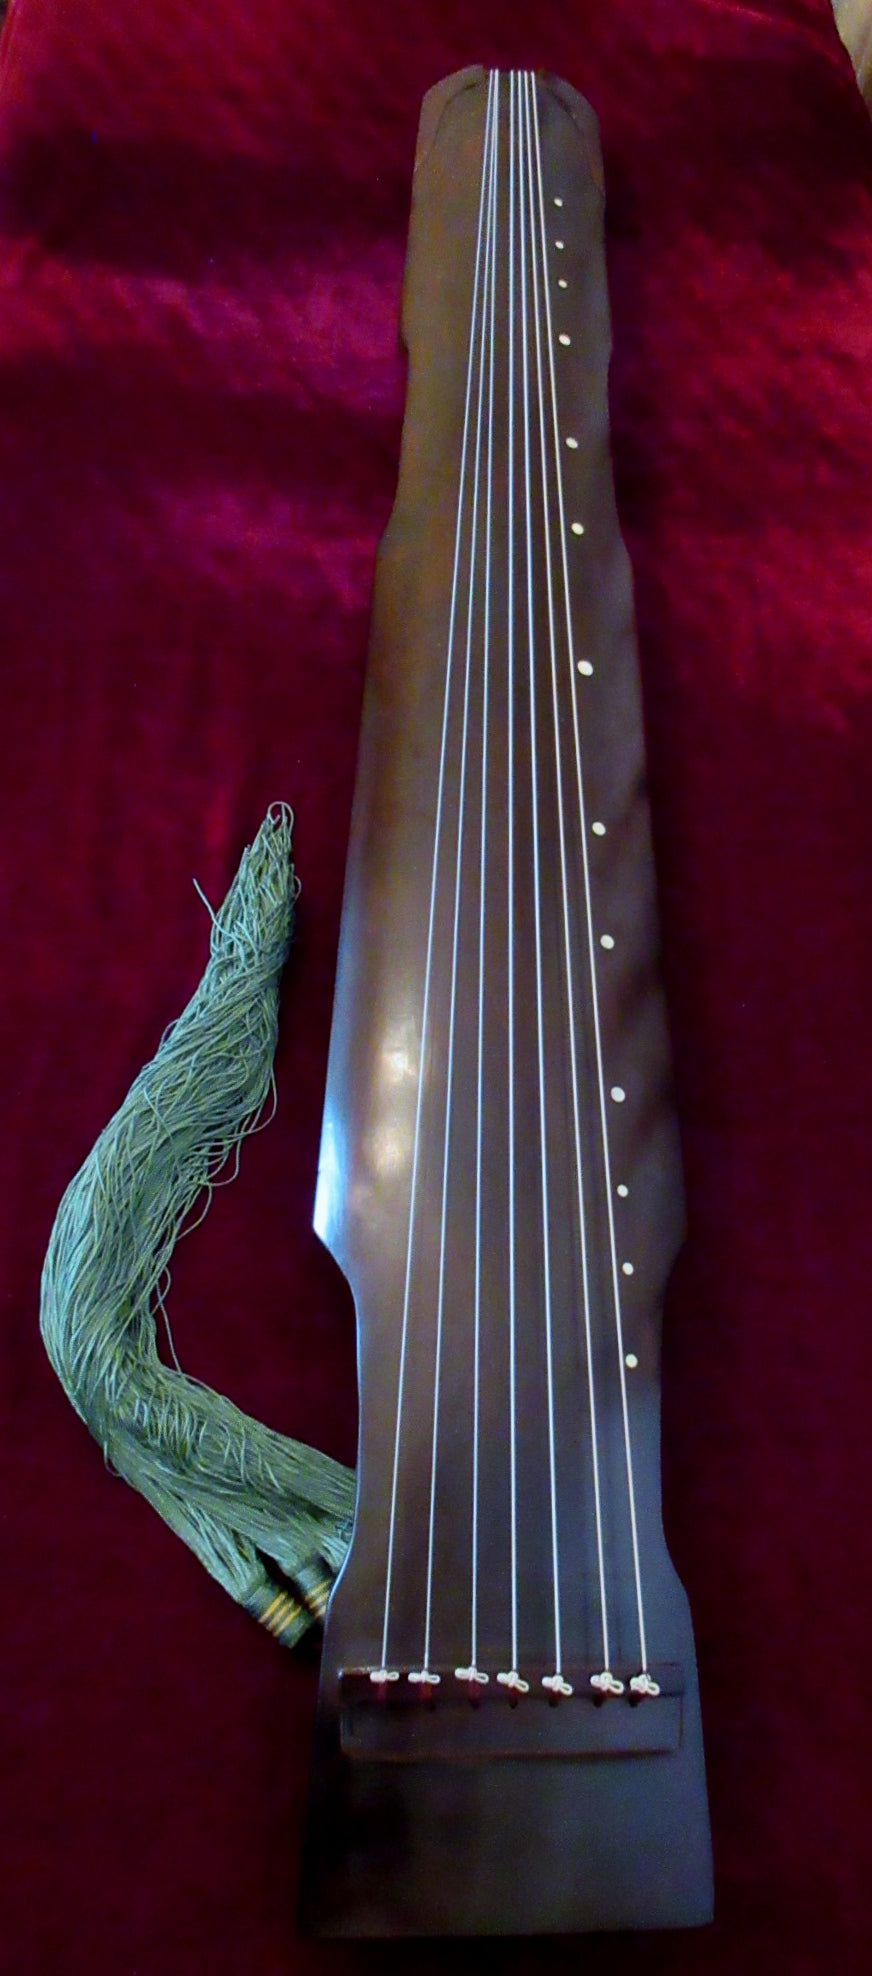 Guqin, Zhong-ni Style, with Guqin Bag & Cushioning Pads. Set up and tuned. Ready to play! 古琴,仲尼式,送琴囊与琴垫